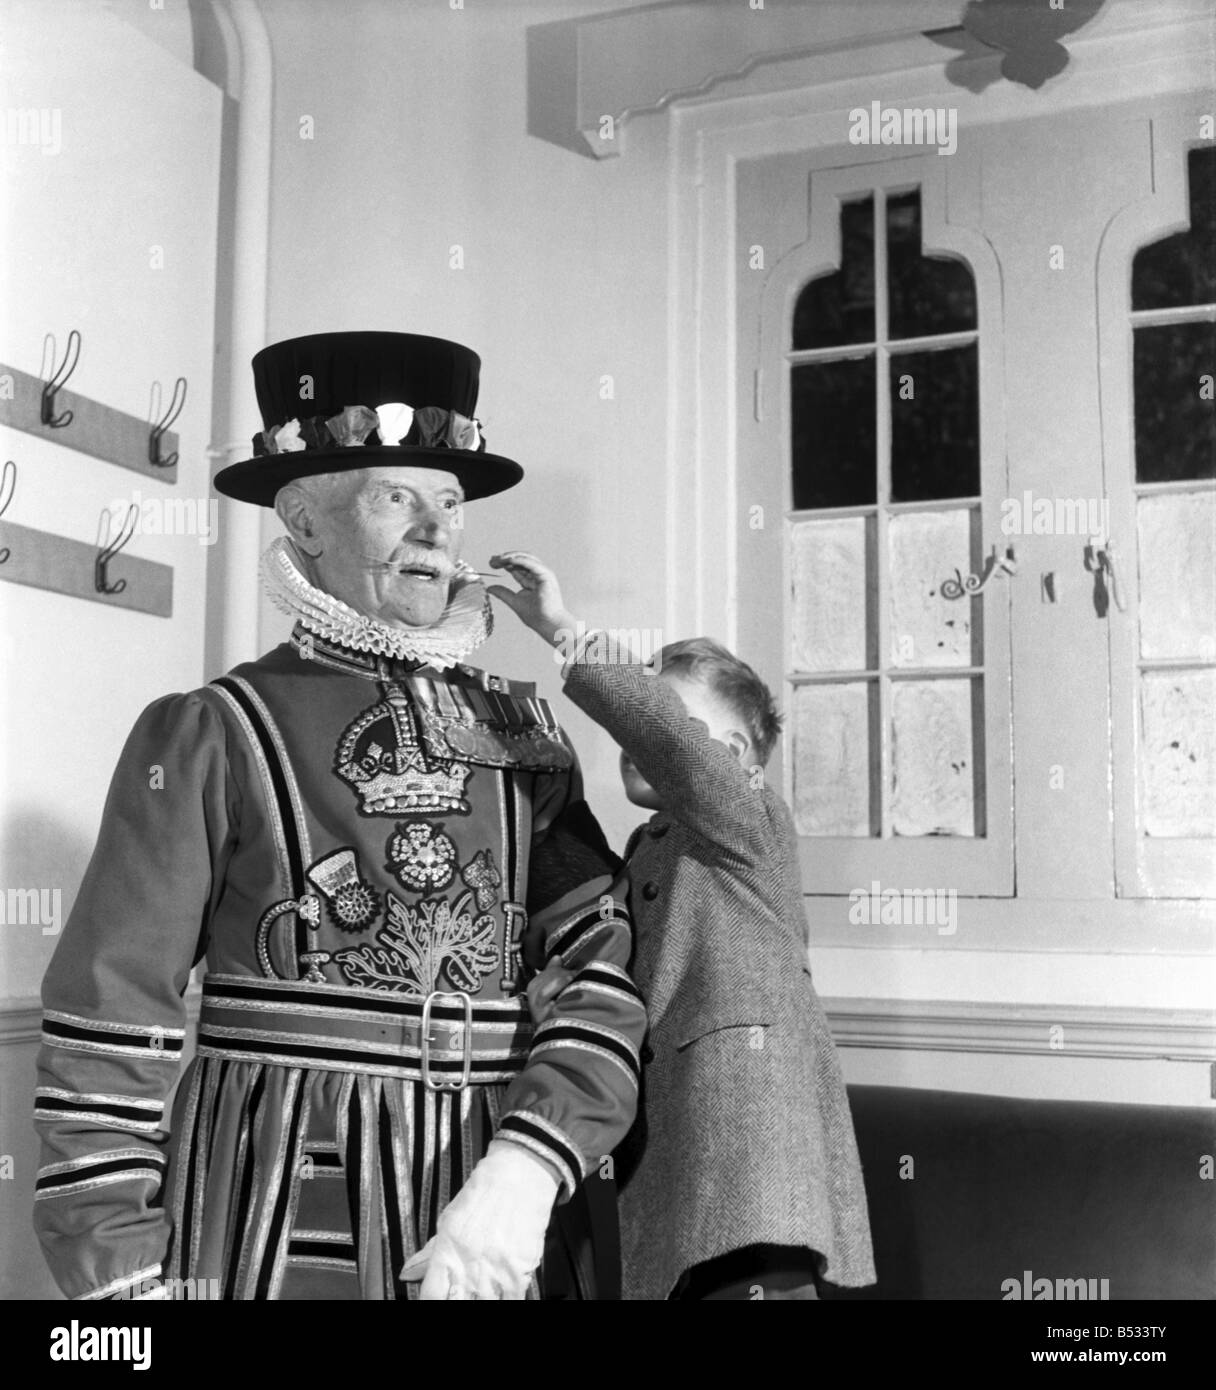 Geoffrey Harcup, aged 4 years with Yeoman Warder David Sprake, 84. Sprake is seen here in the full dress uniform - Stock Image